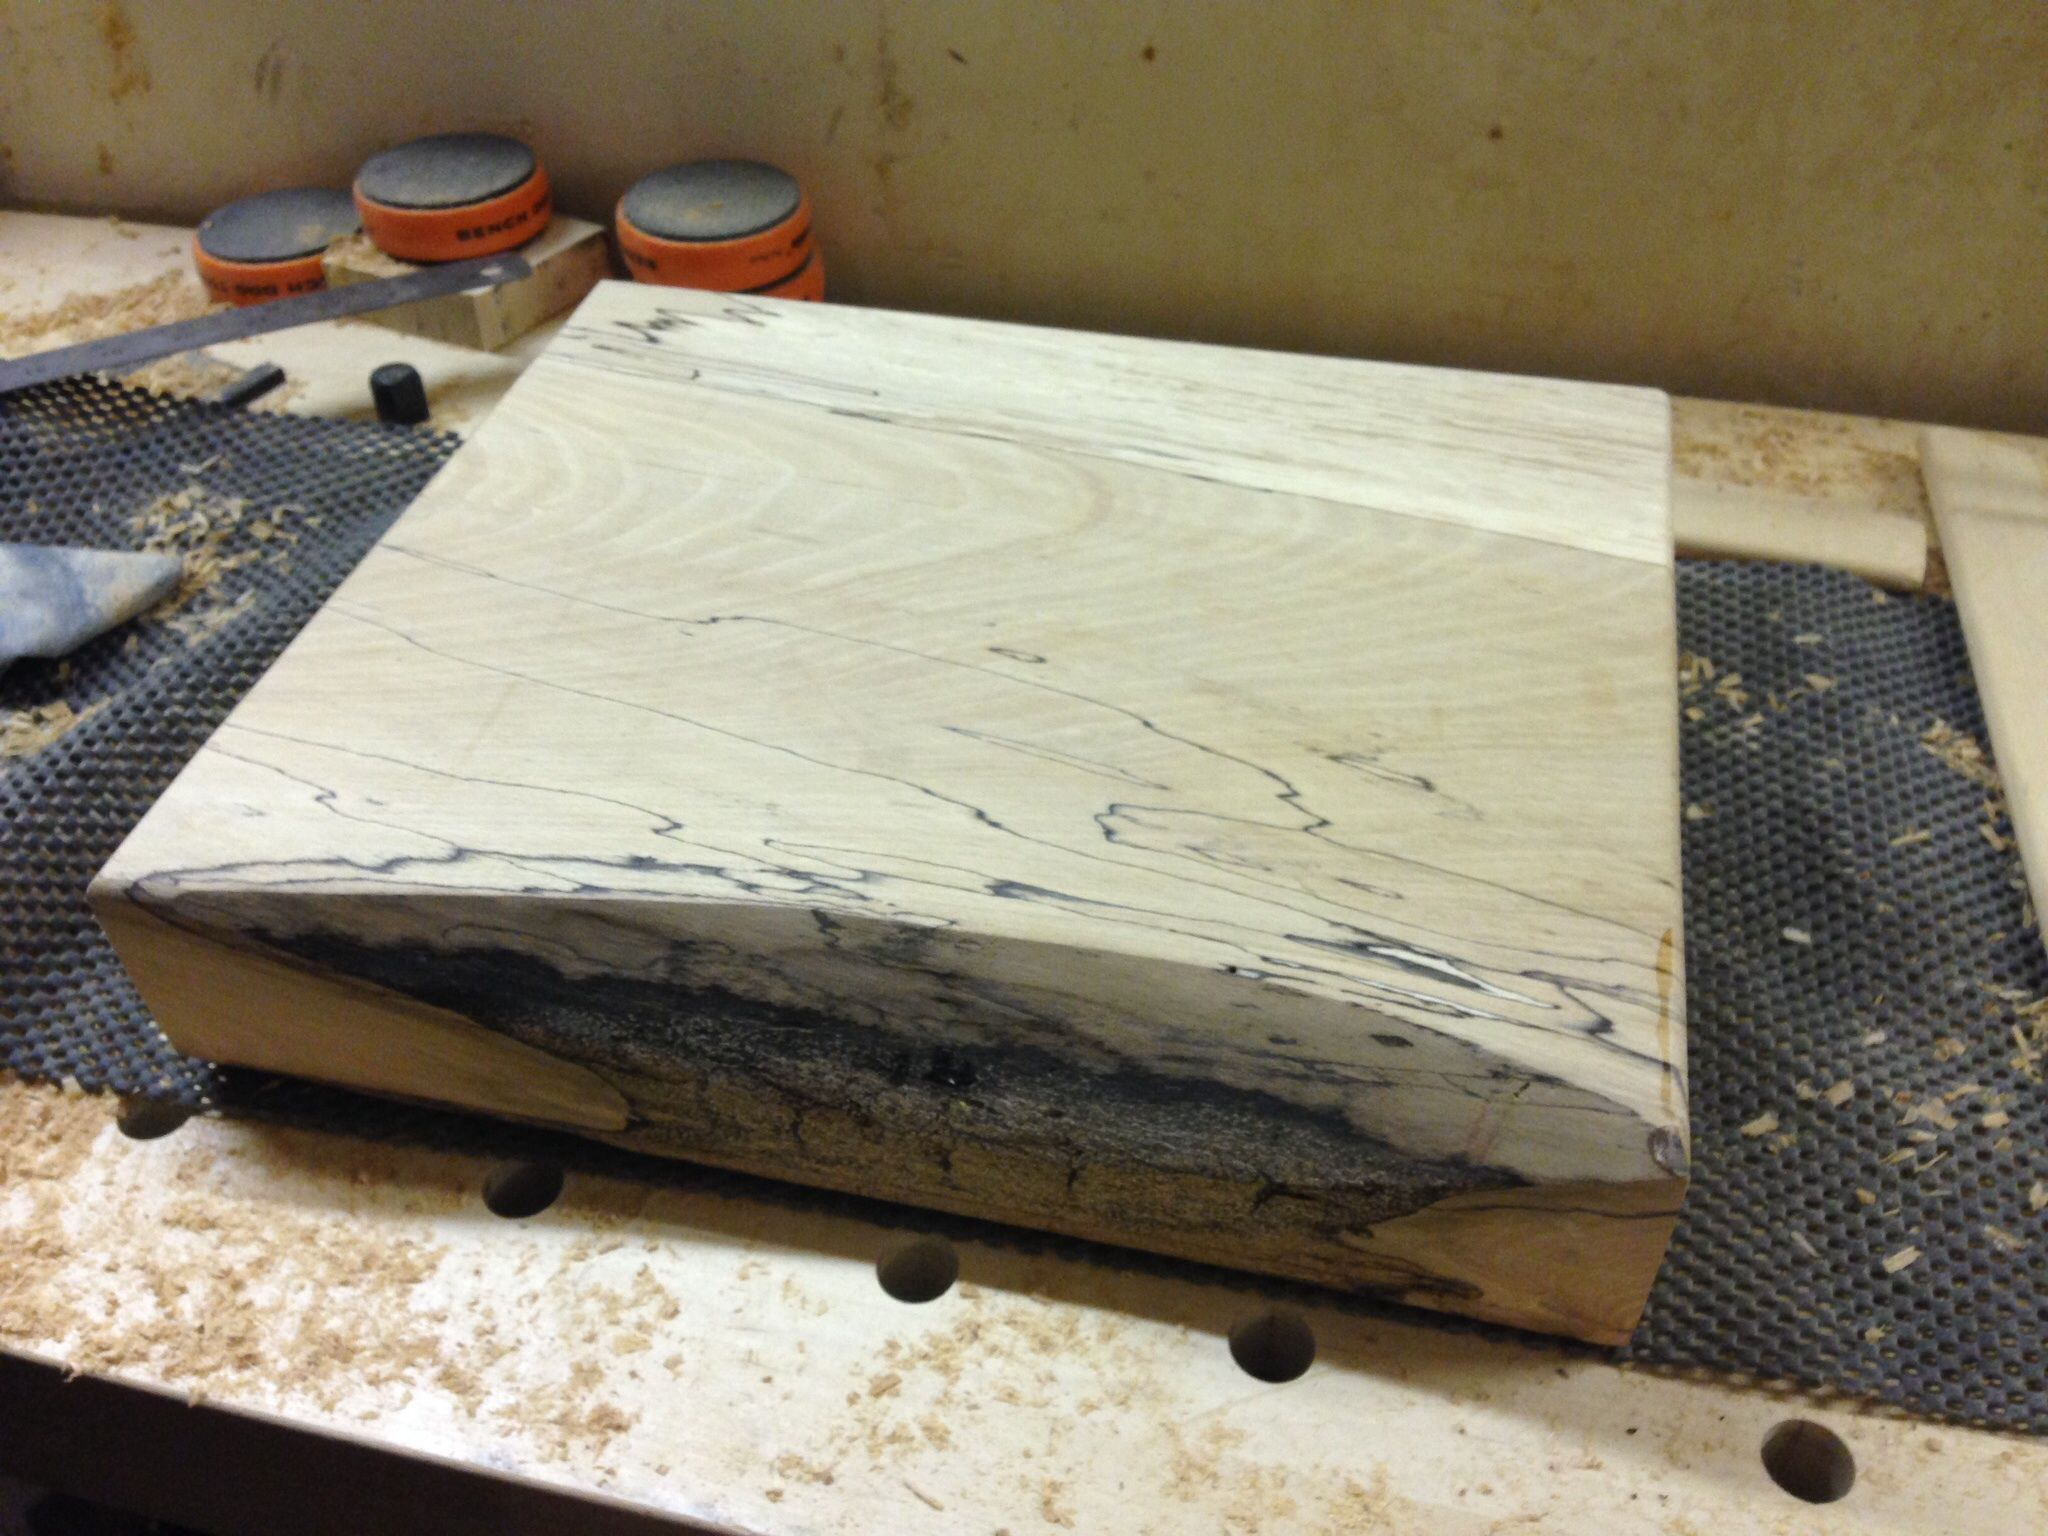 Spalted beech chopping block in the making by Gregster for www.handmadeinblighty.com